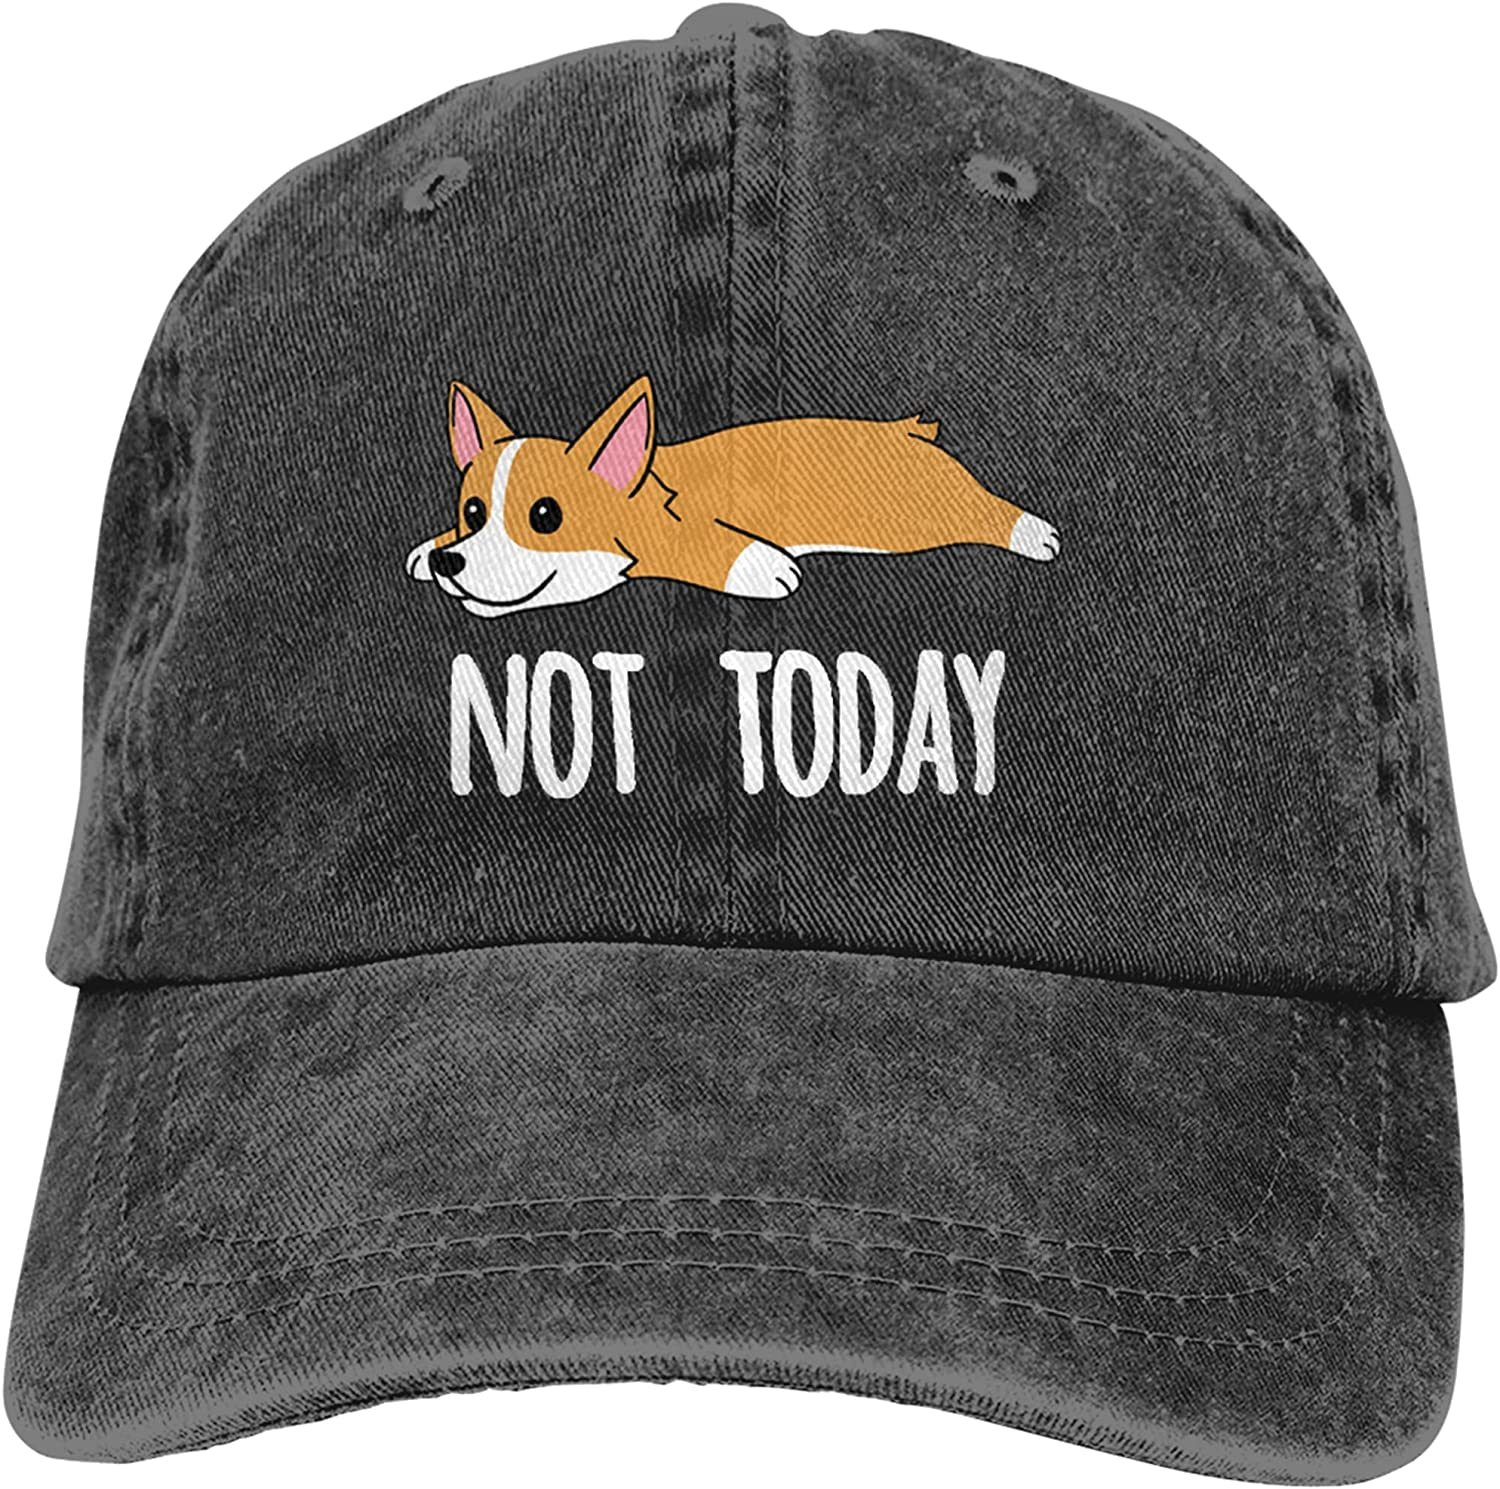 Women's Embroidered Baseball Cap Not Today Corgi Dog Vintage Distressed Hat